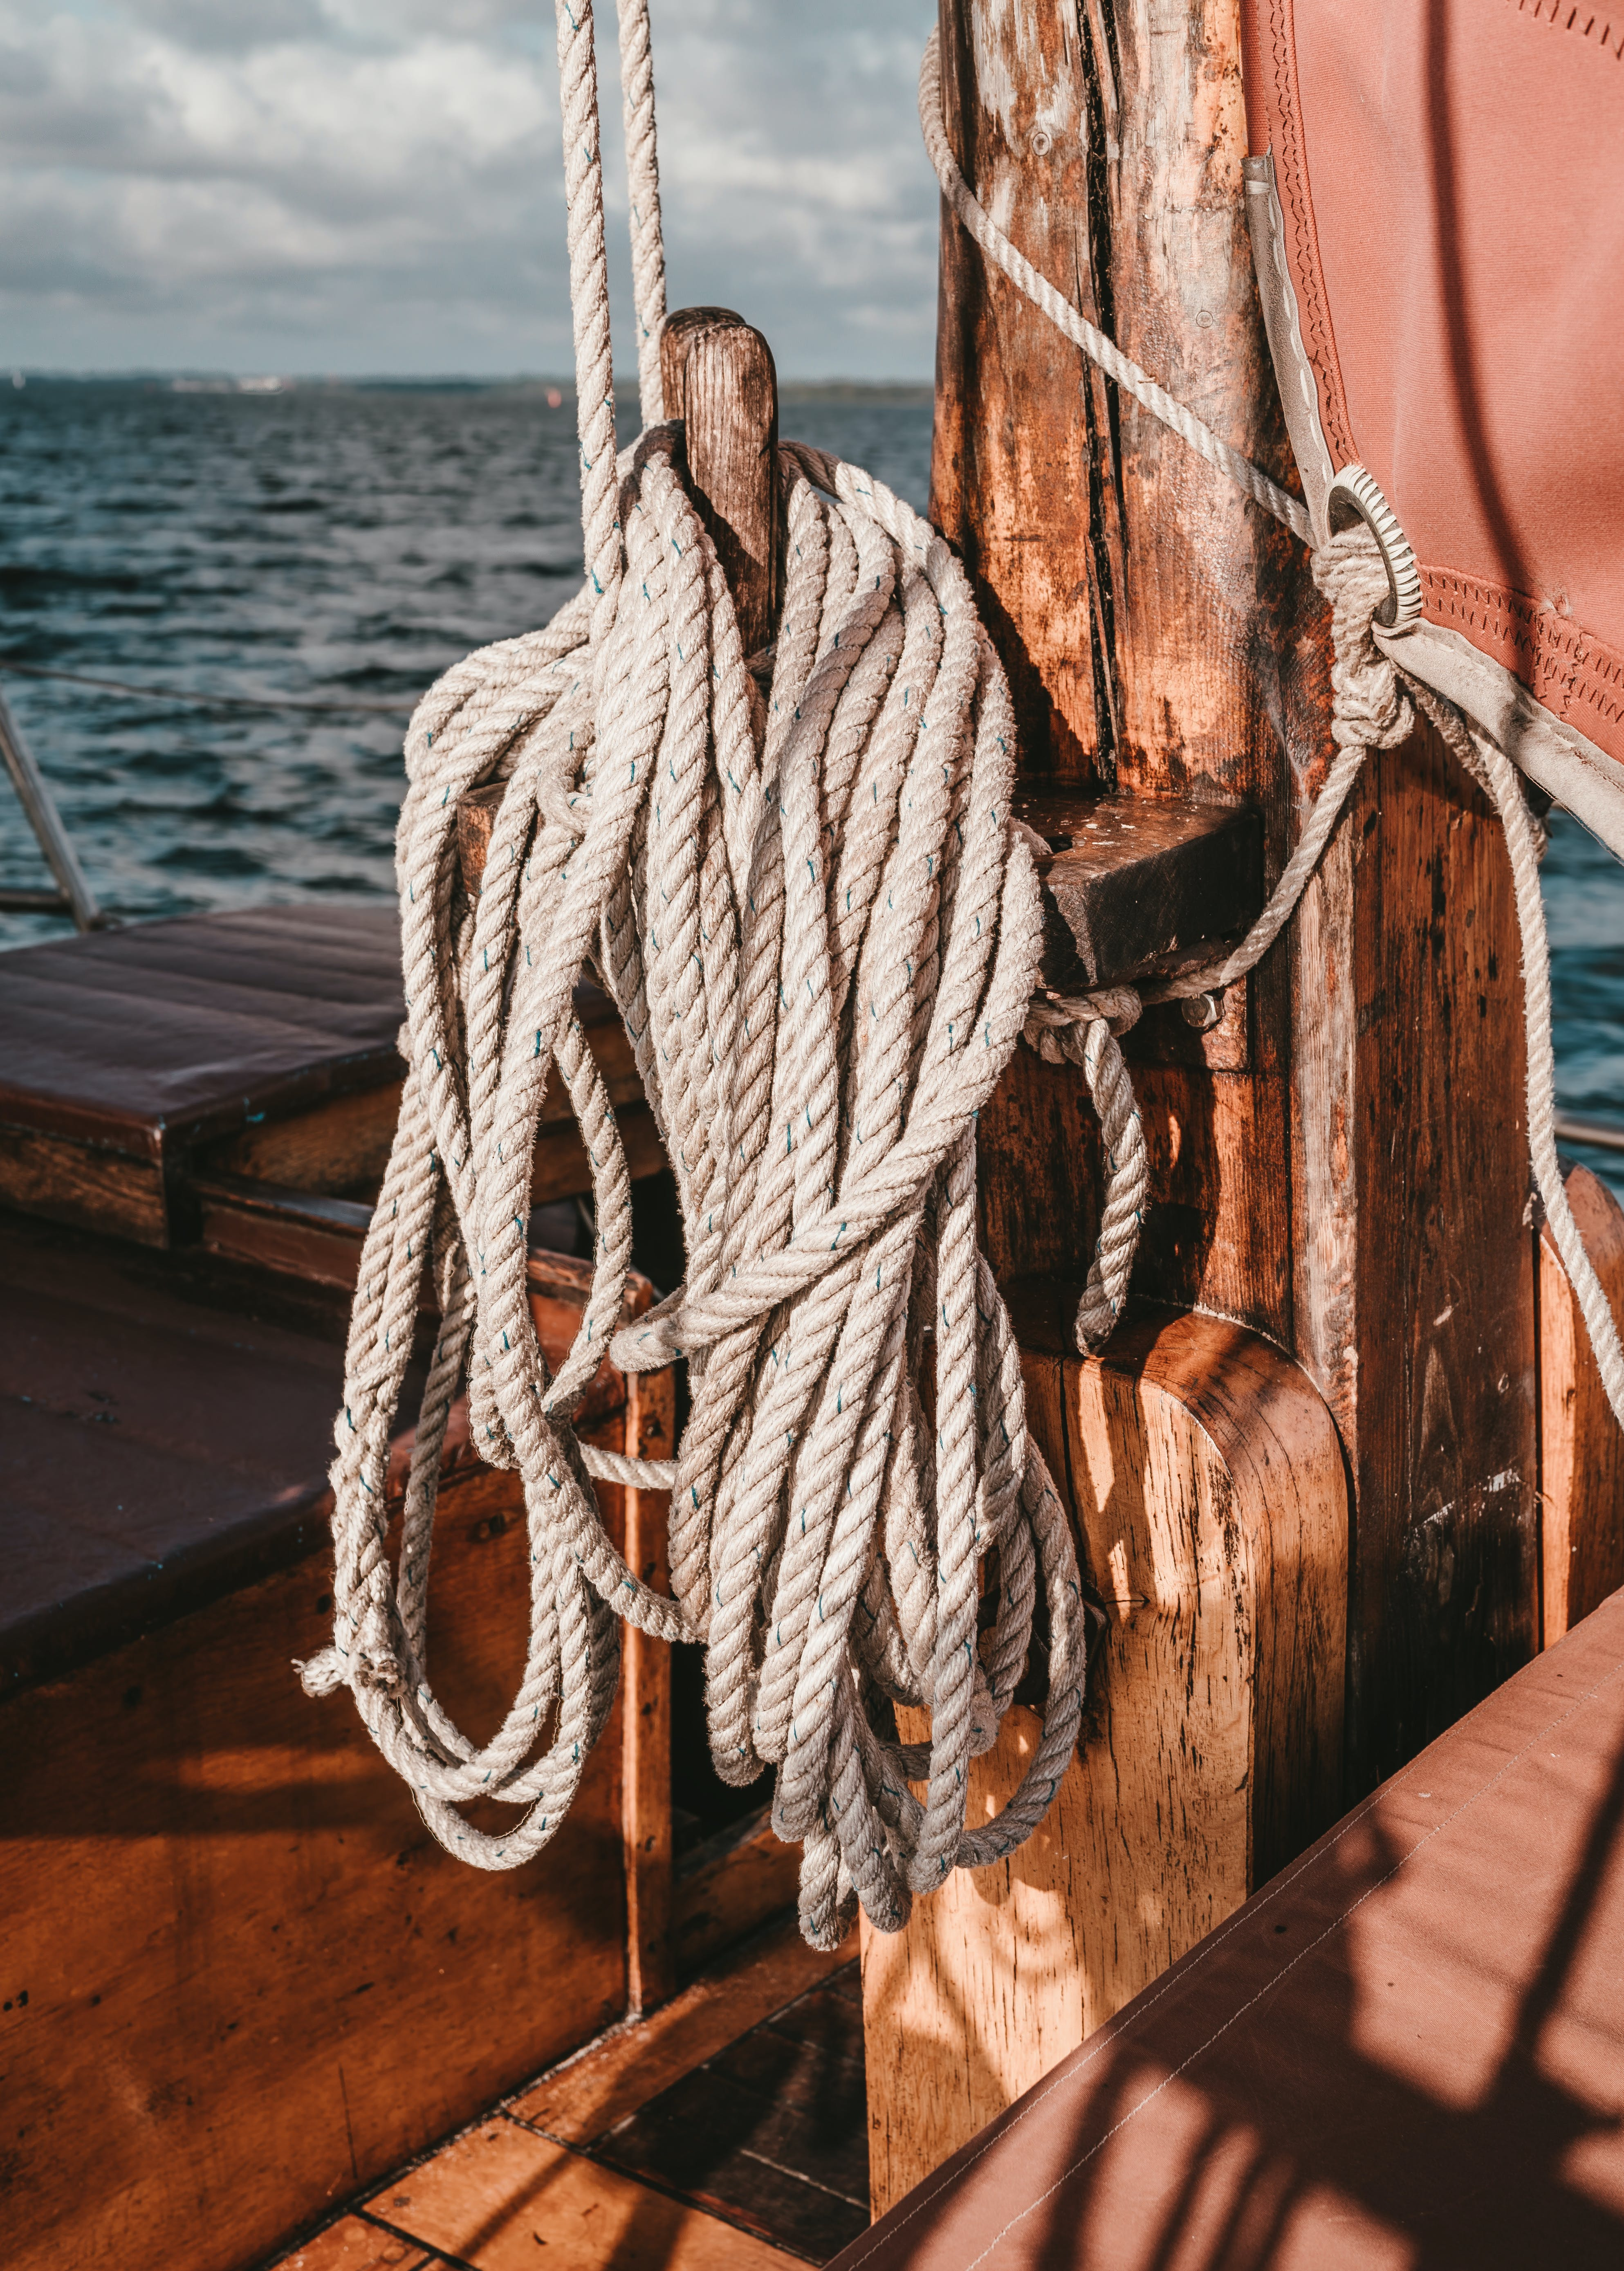 White Rope on Wooden Hook